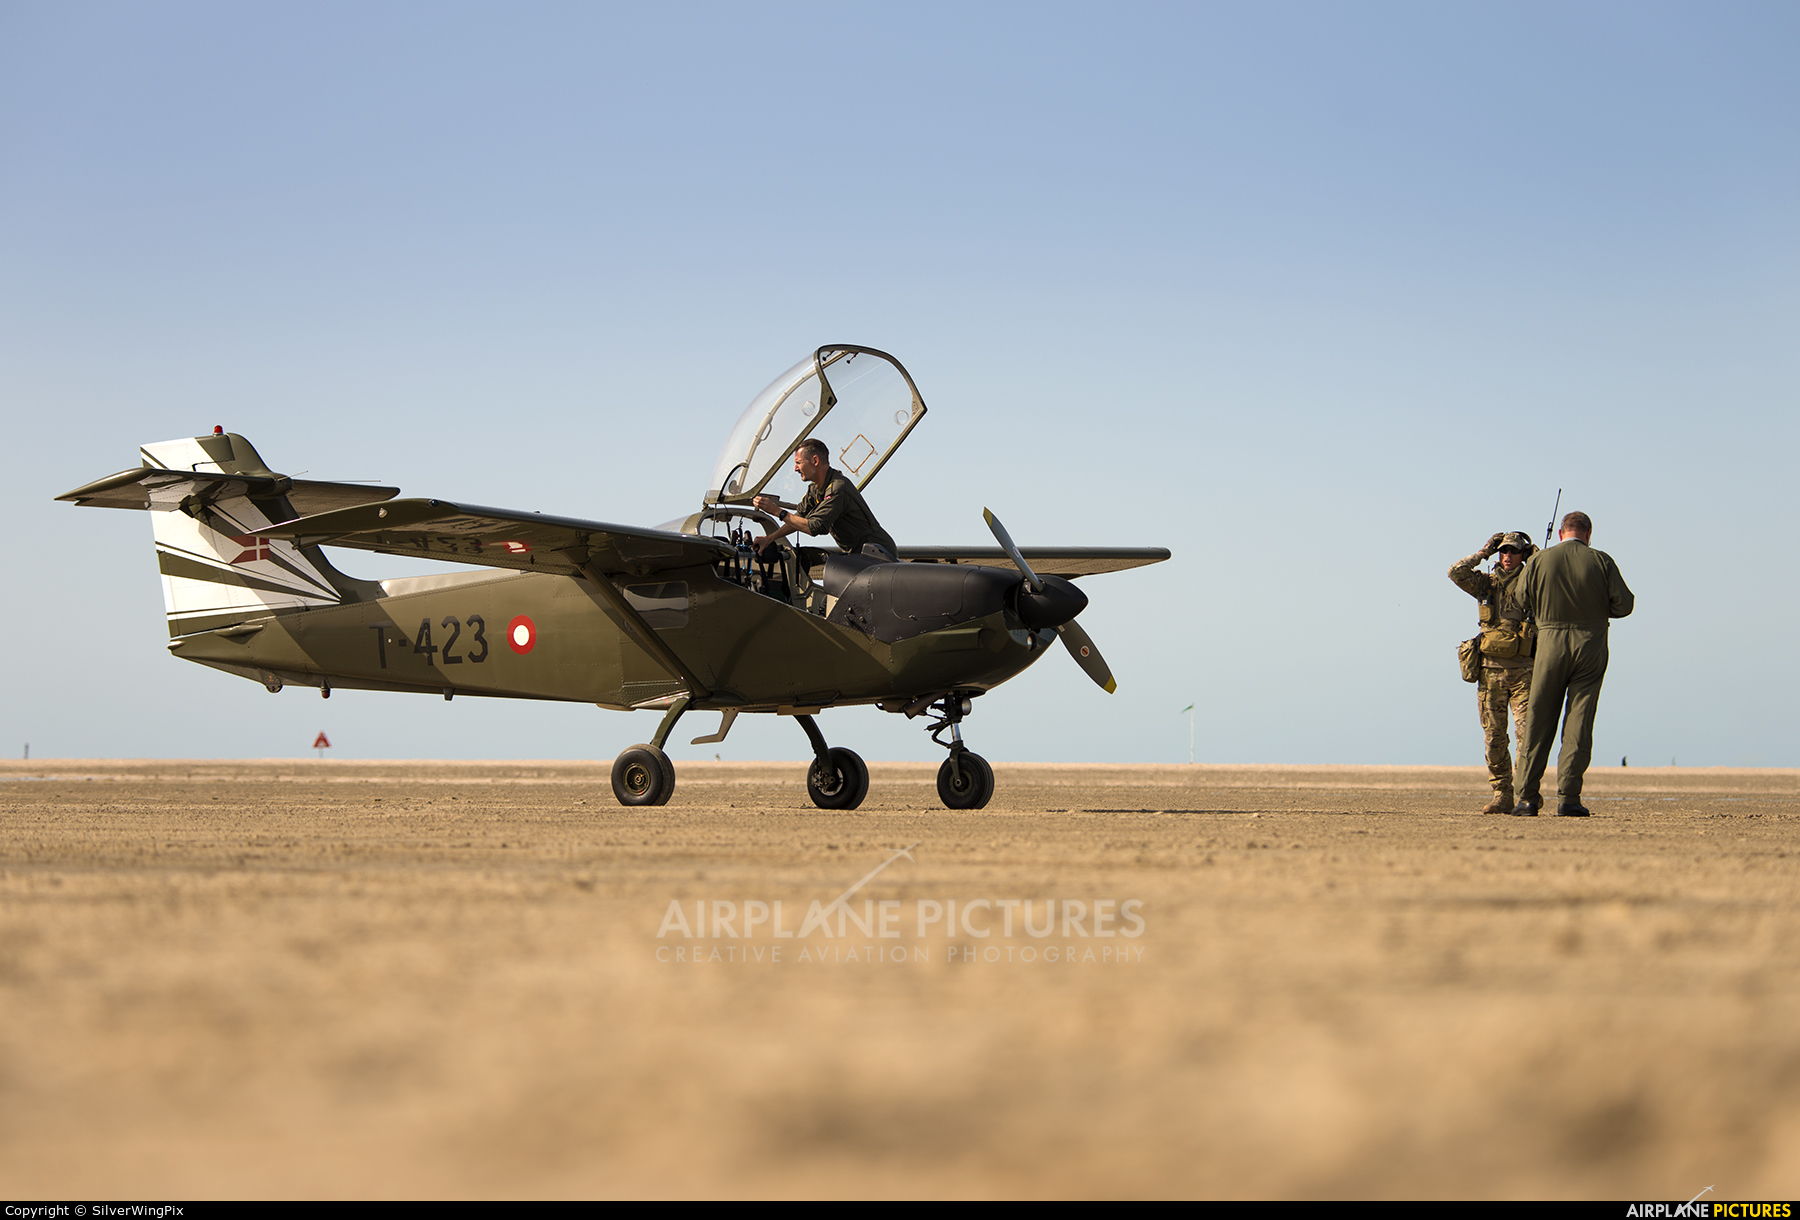 Denmark - Air Force T-423 aircraft at Off Airport - Denmark